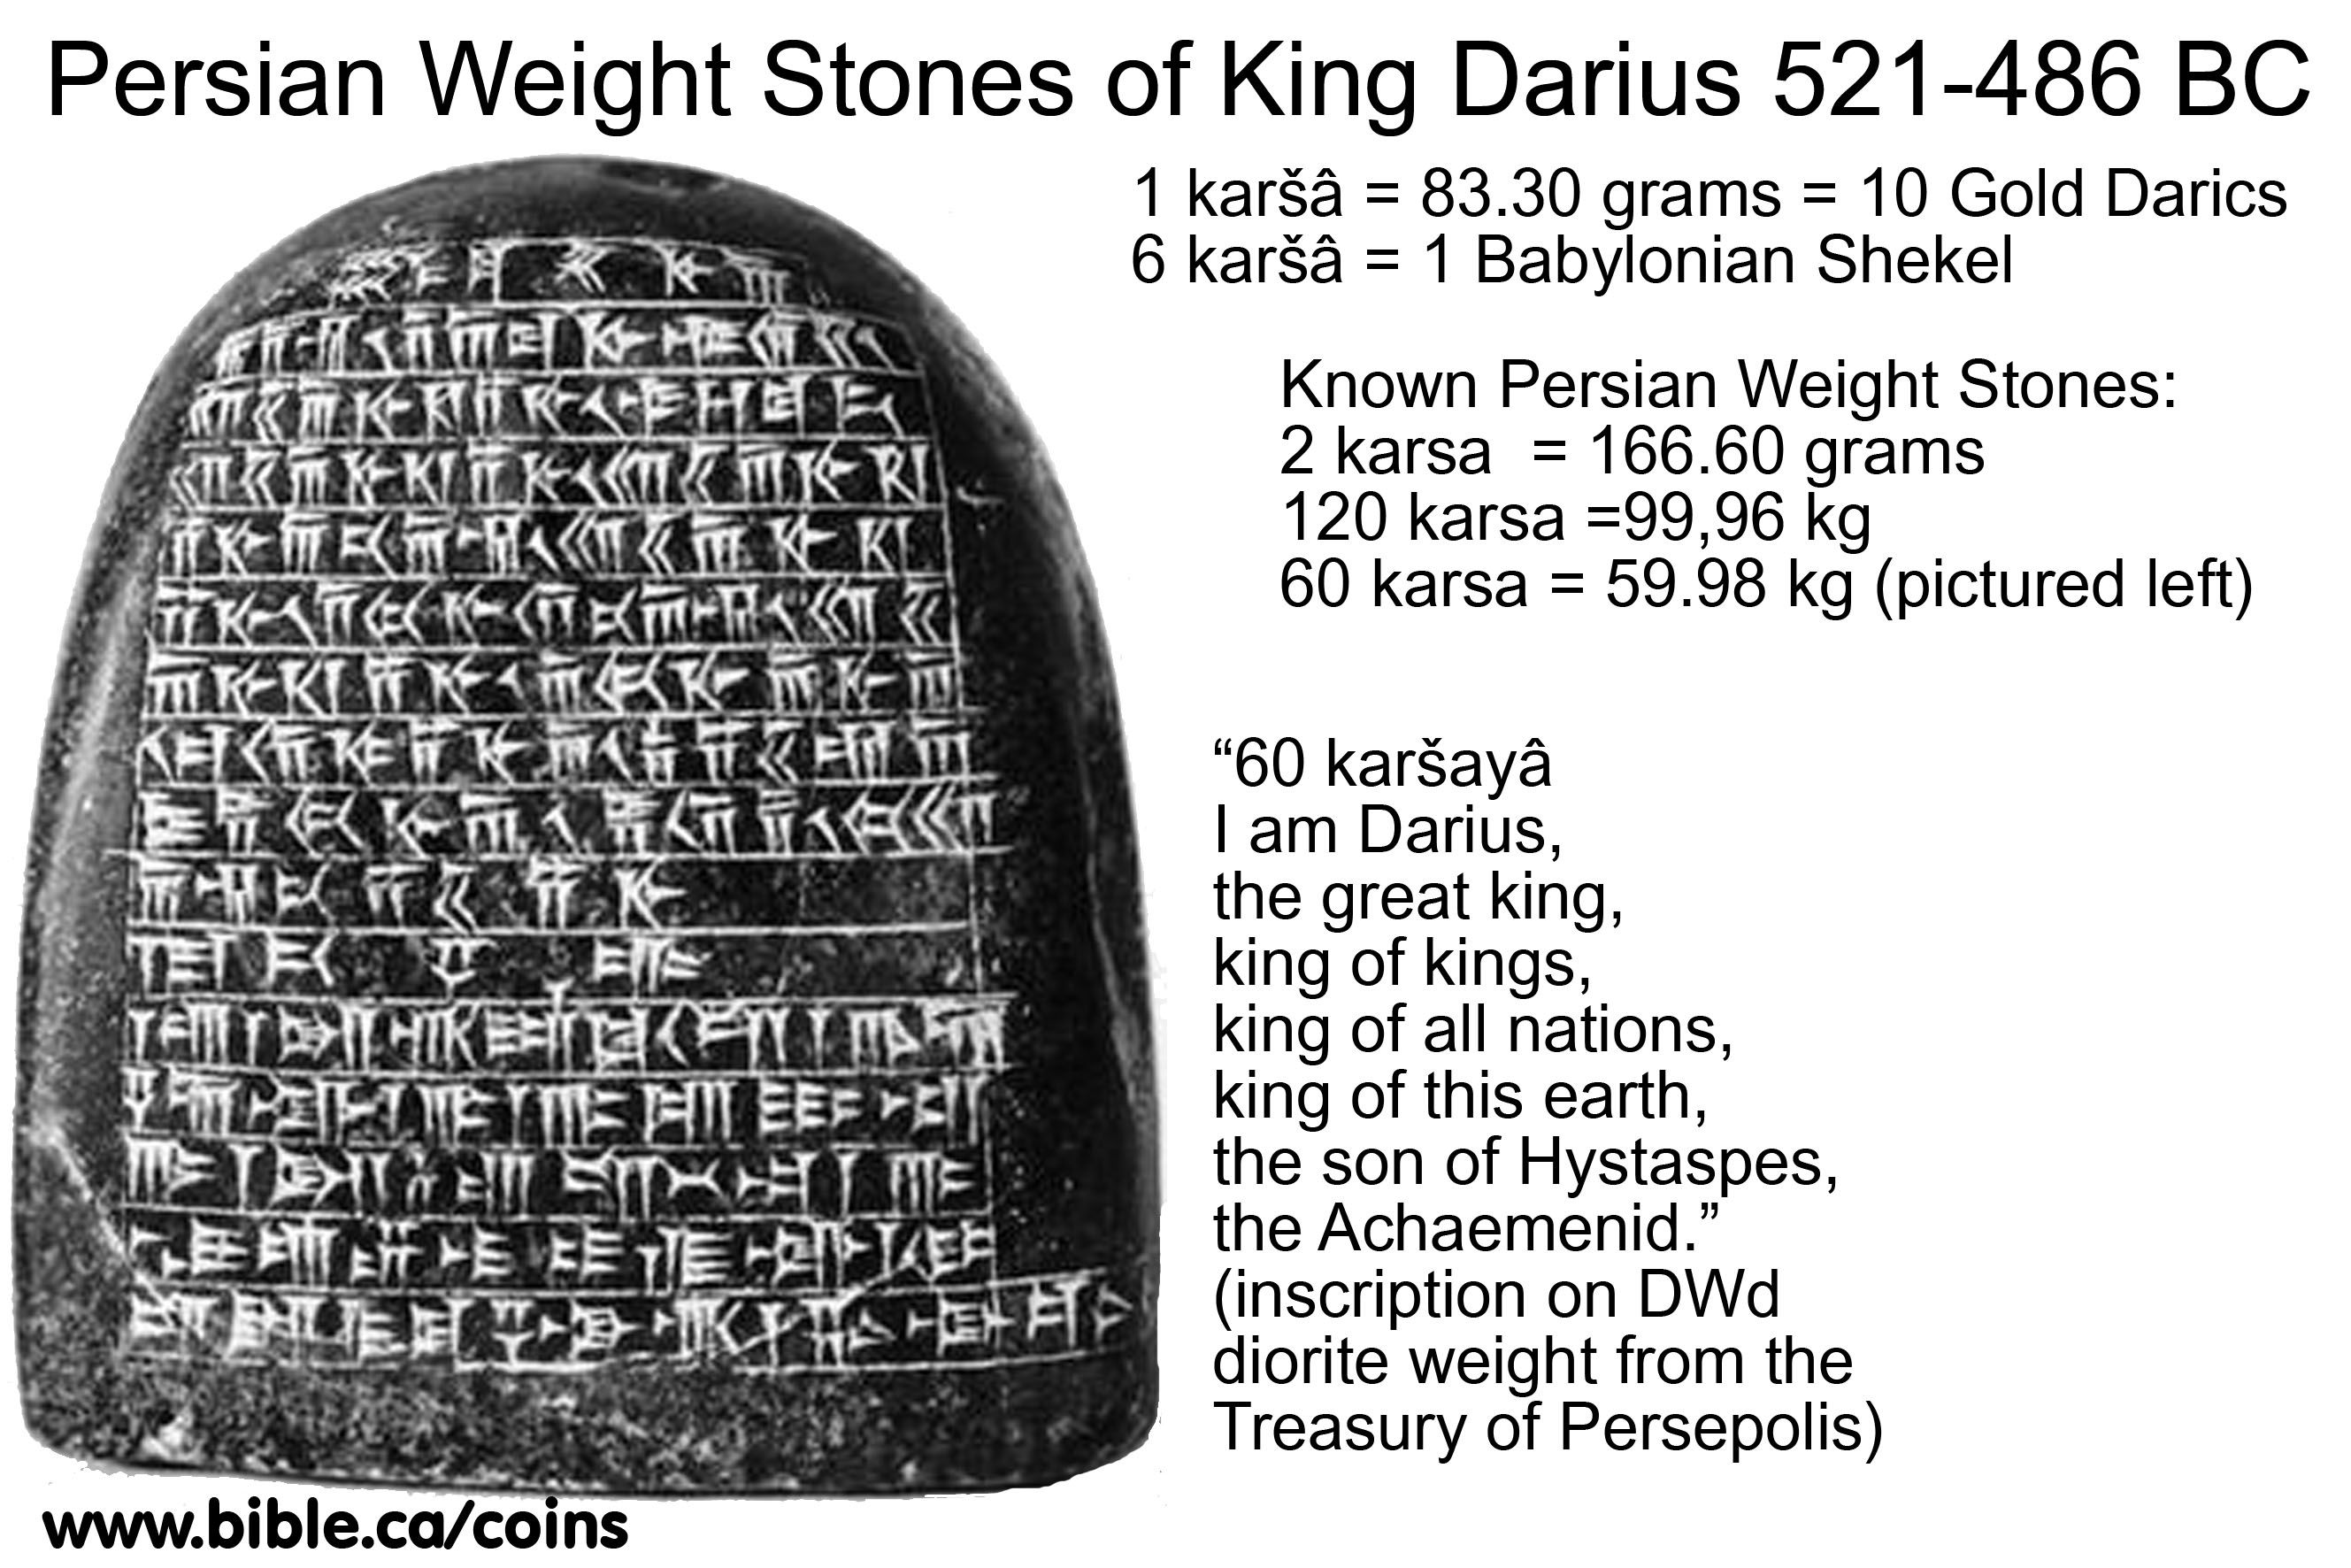 History of biblical coins how they were made money weight system king of kings king of all nations king of this earth the son of hystaspes the achaemenid inscription on 60 karsa dwd diorite weight nvjuhfo Image collections